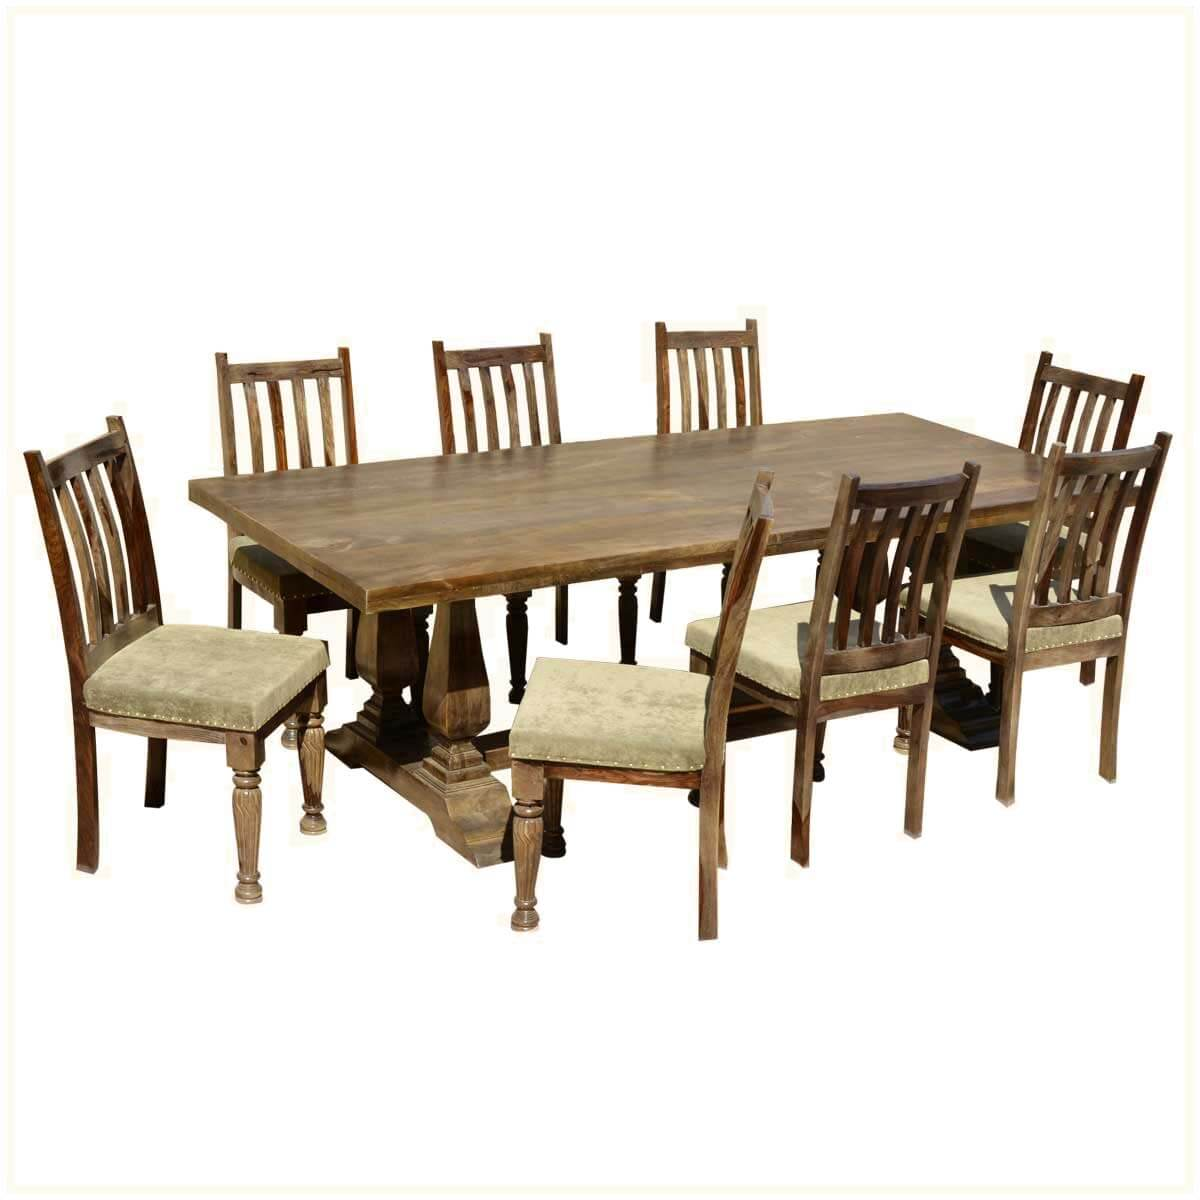 farmhouse dining chairs pottery barn wicker chair and ottoman solid wood trestle rustic table